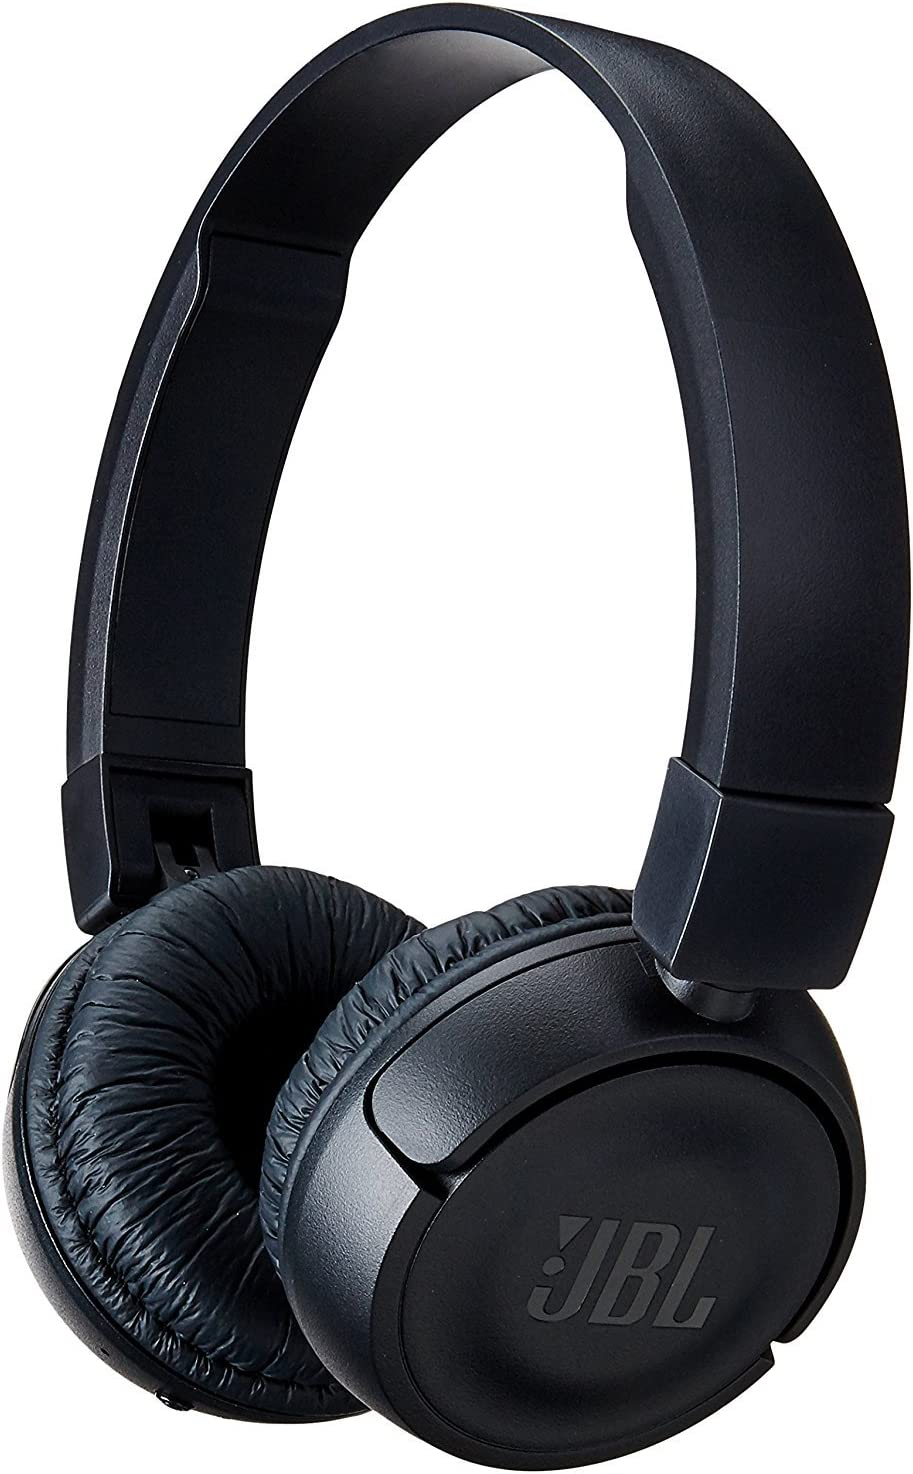 JBL Bluetooth Wireless On-Ear Headphones with Built-in Remote and Microphone, T450BT, Black (Non-Retail Packaging)